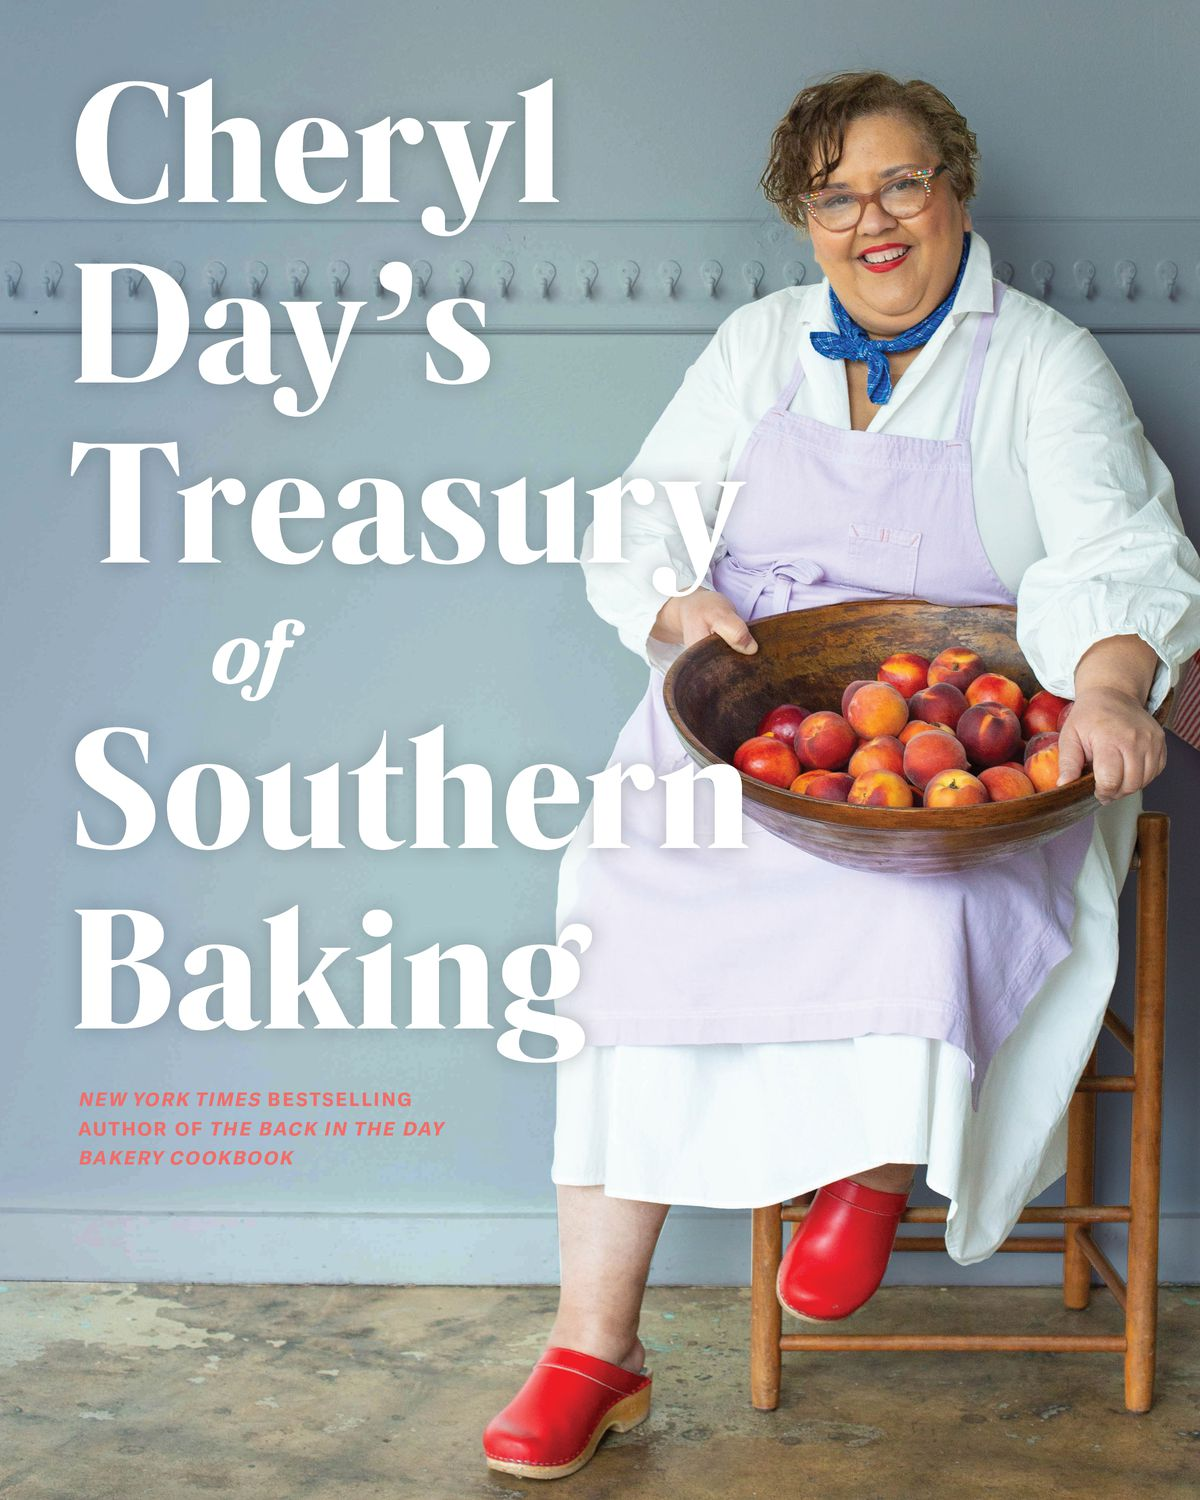 A woman, Cheryl Day, sits in a chair holding a large bowl of peaches on the cover of Cheryl Day's Treasury of Southern Baking